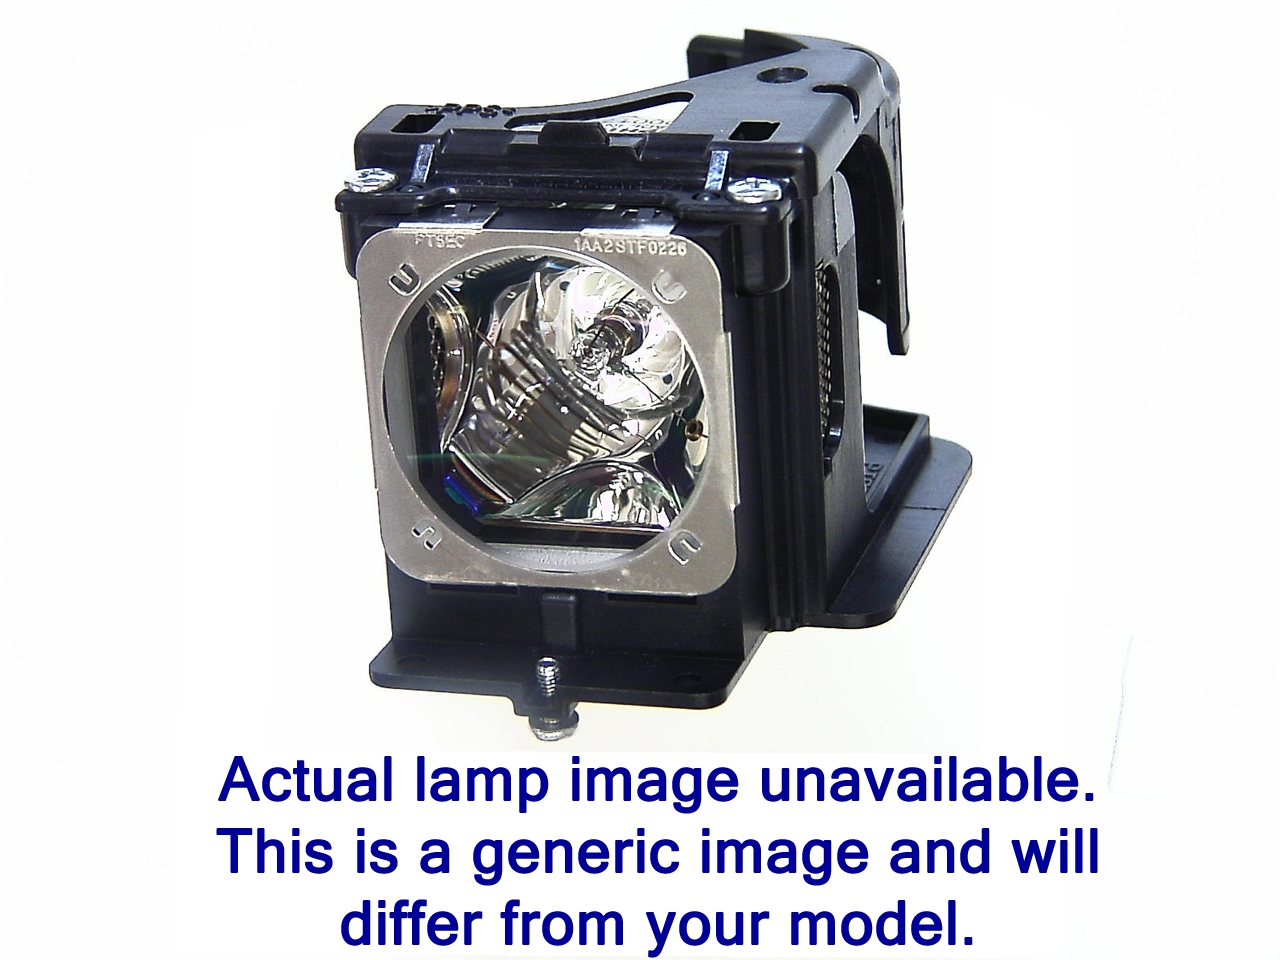 Smart Lamp for Serial Numbers 2101 a 2600 inclusive For EIKI LC-XB20 (XB2501 Lamp) Proyector.